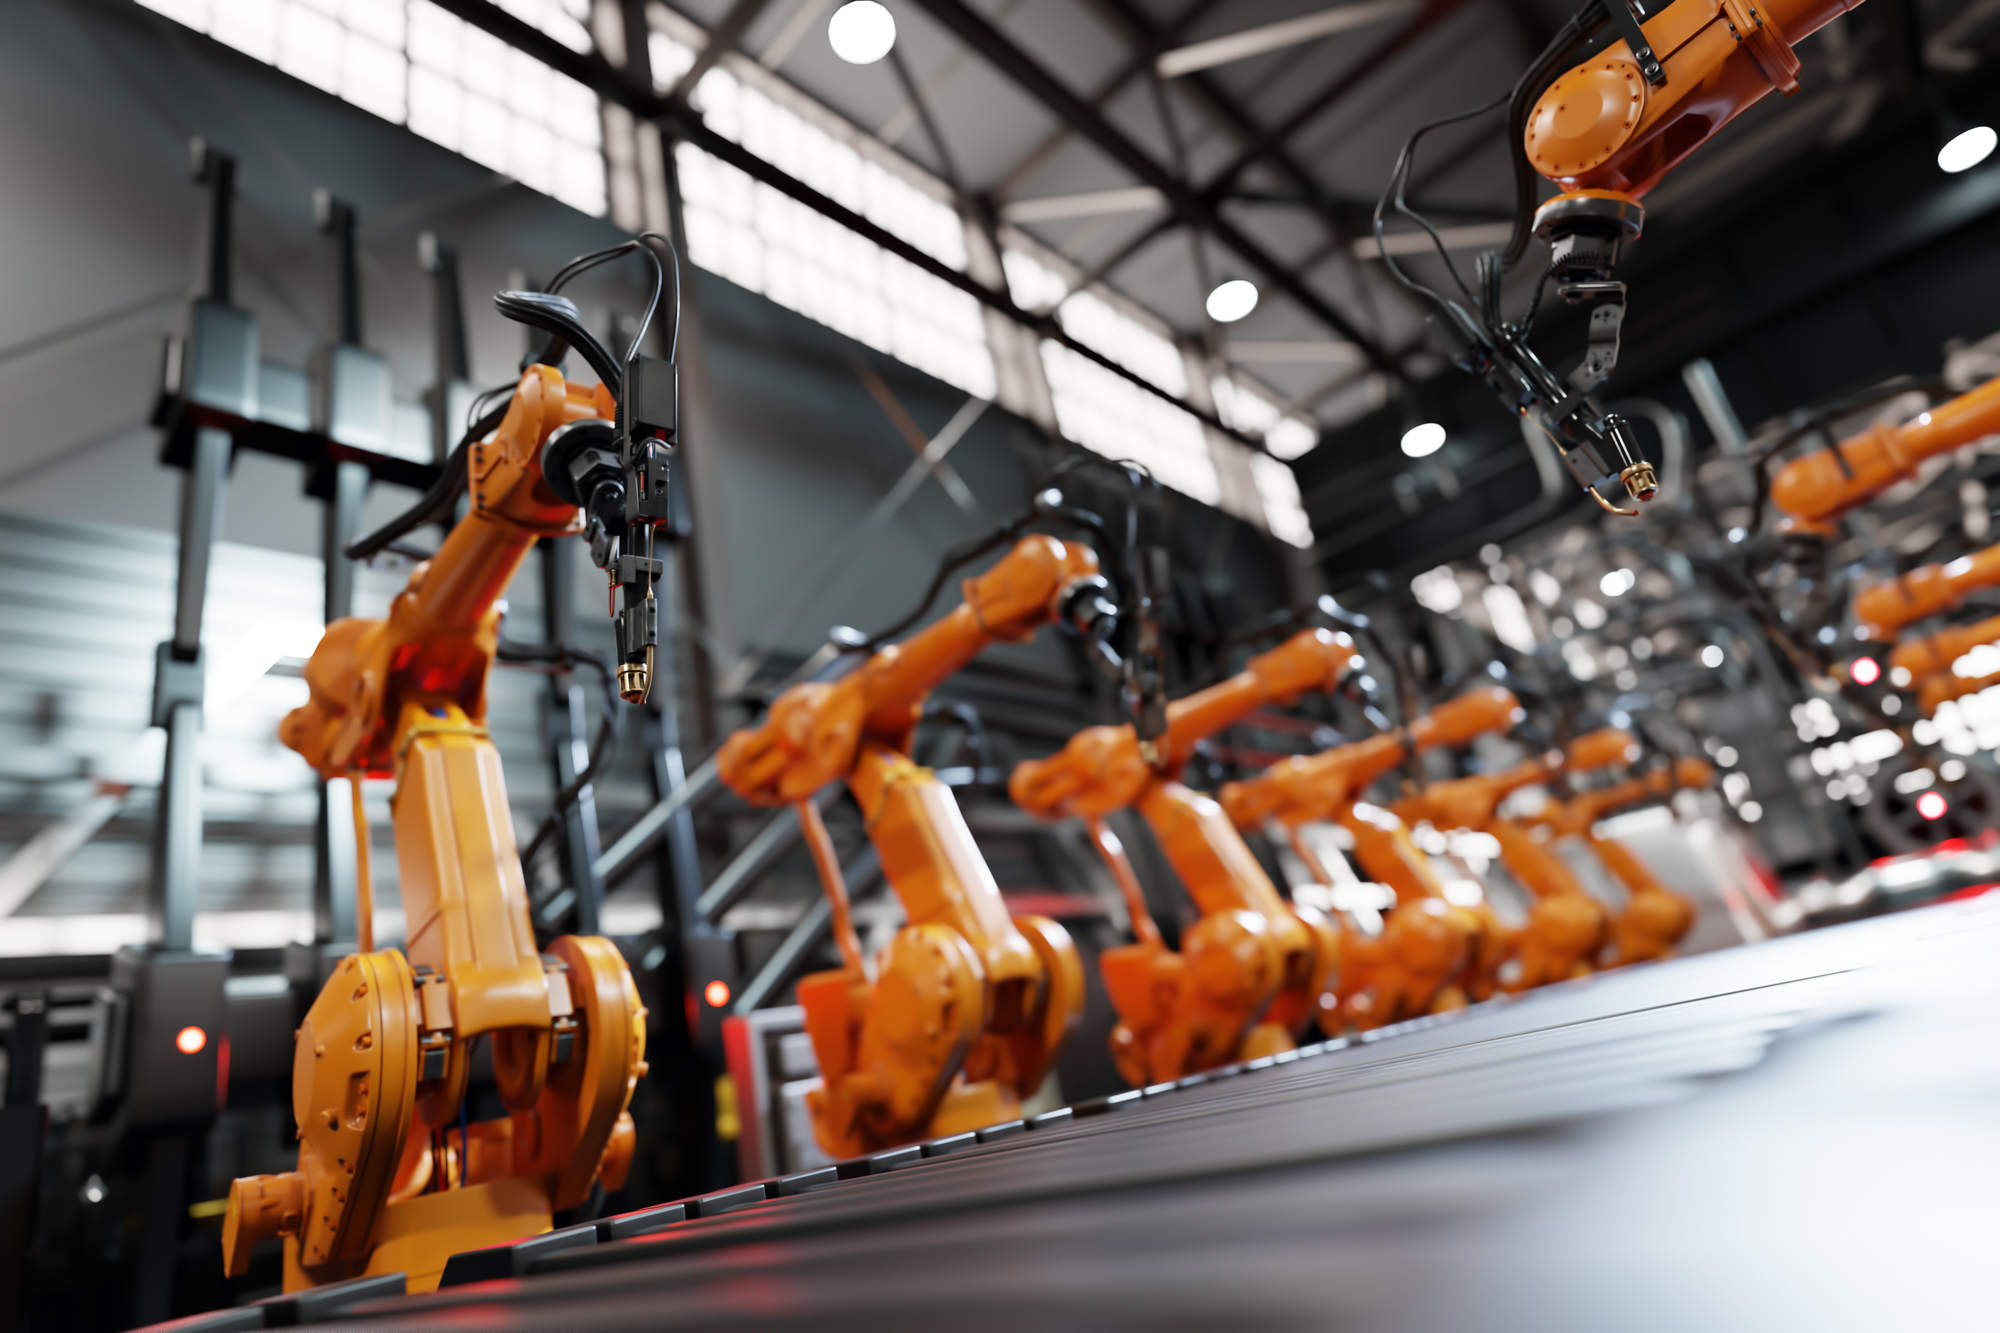 robotic-arms-along-assembly-line-in-modern-factory-compressed